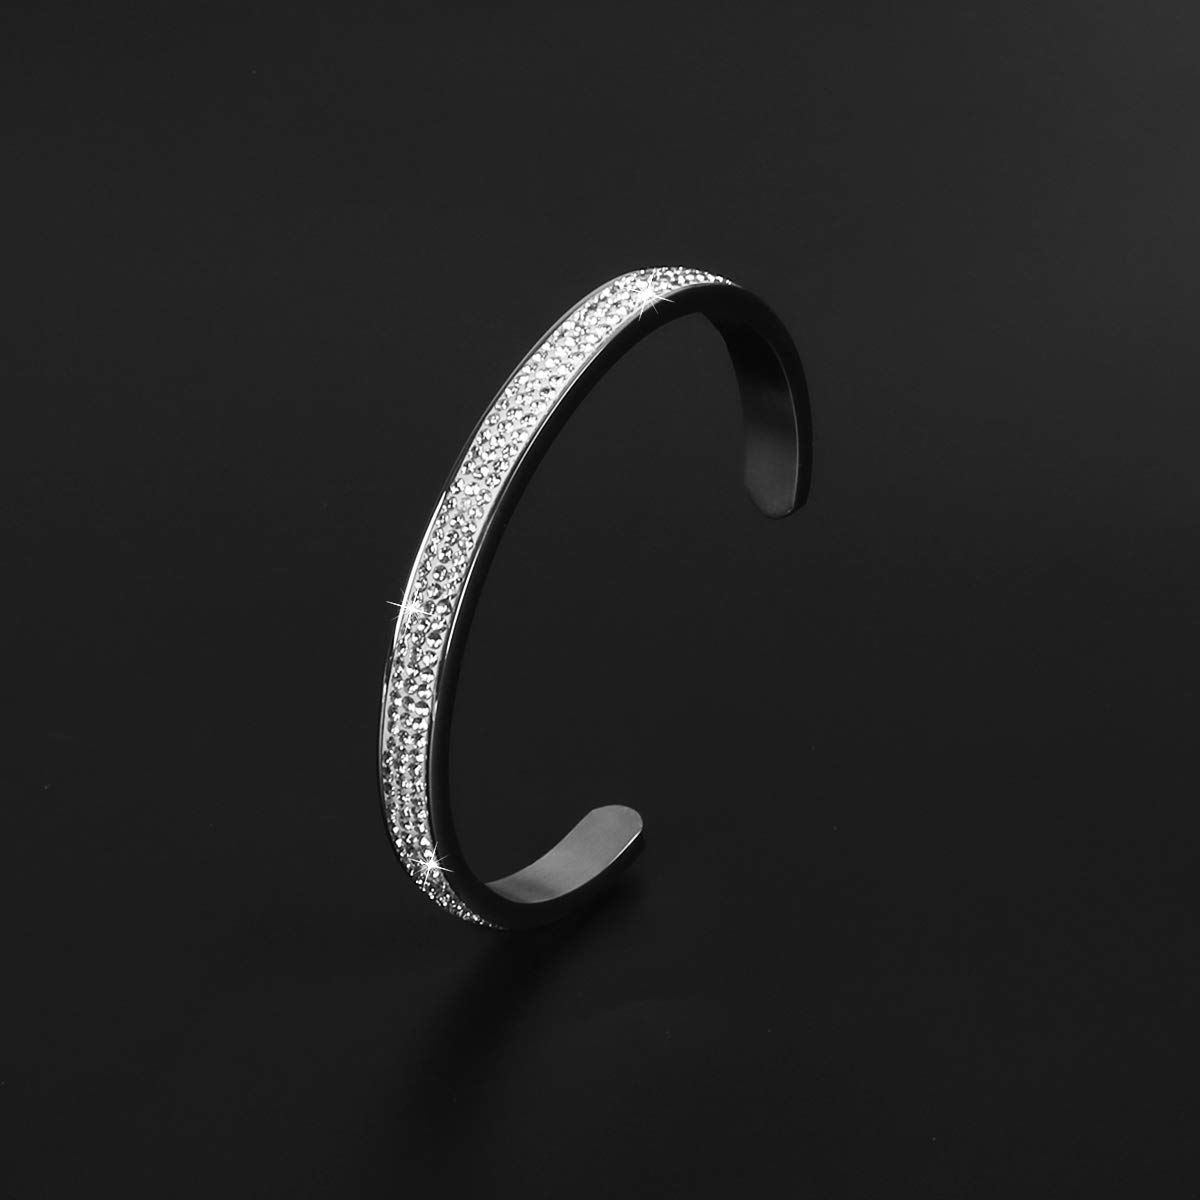 NewChiChi Stainless Steel Grooved Cuff Bangle High Polished Jewelry Bracelet for Women